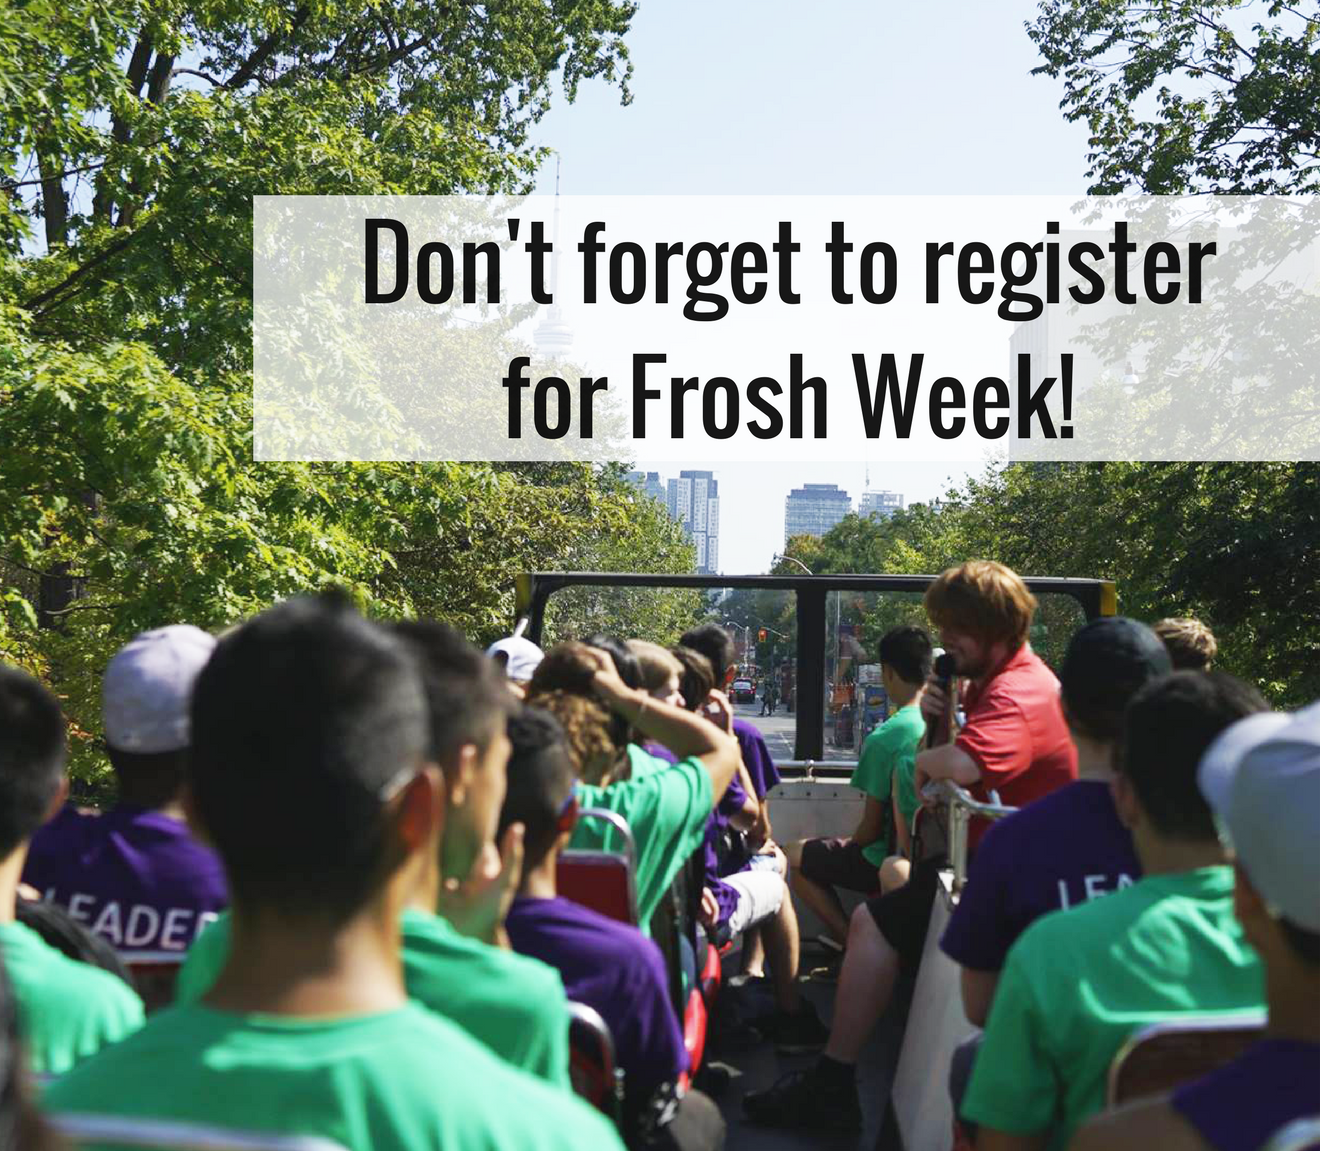 Have you registered for Frosh Week yet?